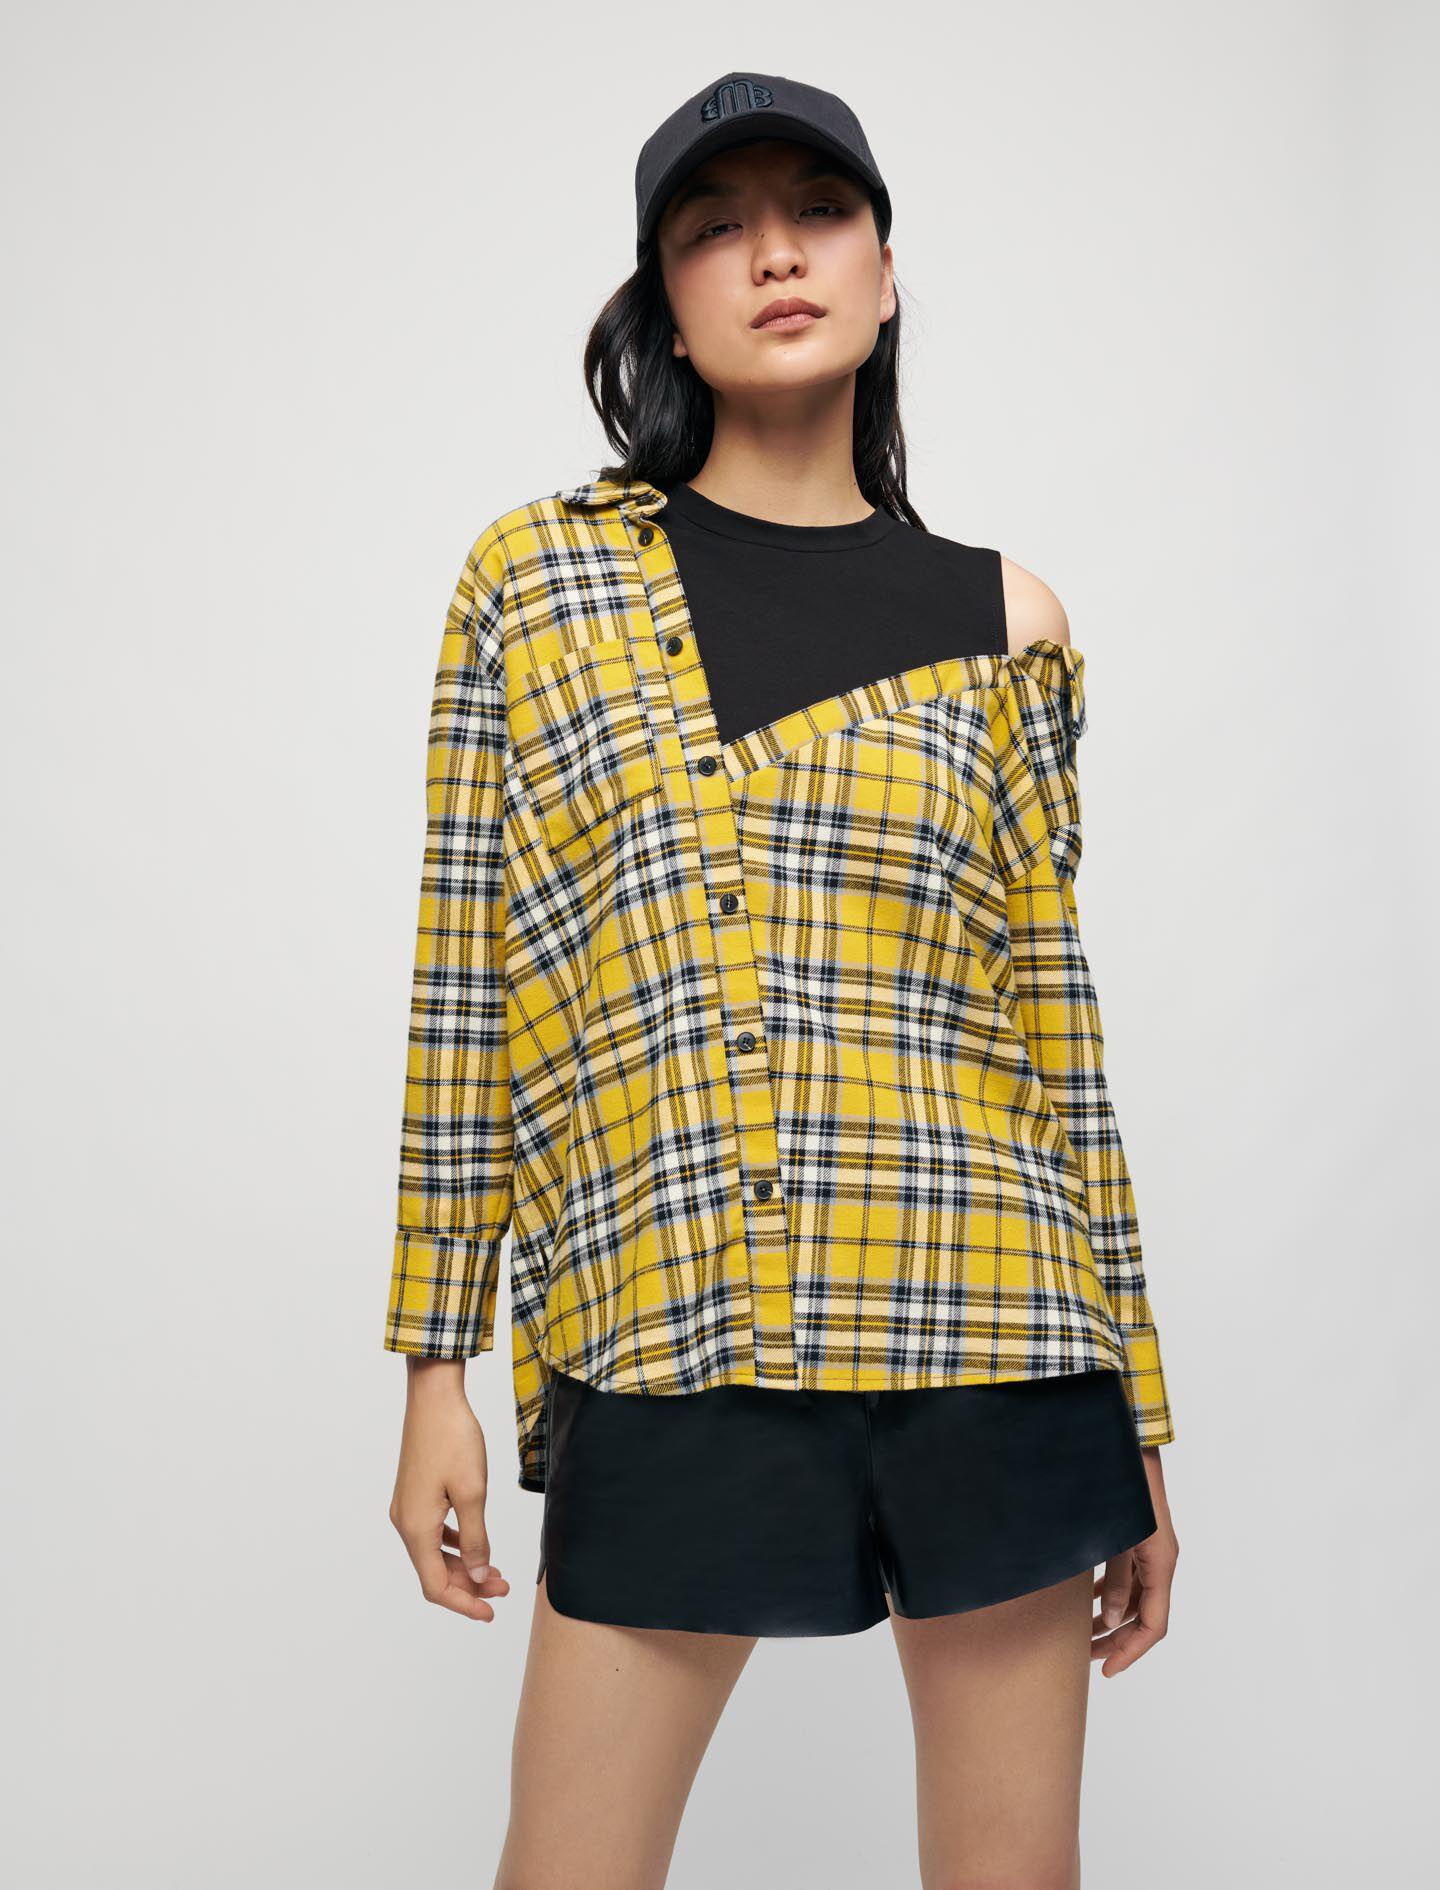 TROMPE L'OEIL CHECKED SHIRT AND T-SHIRT